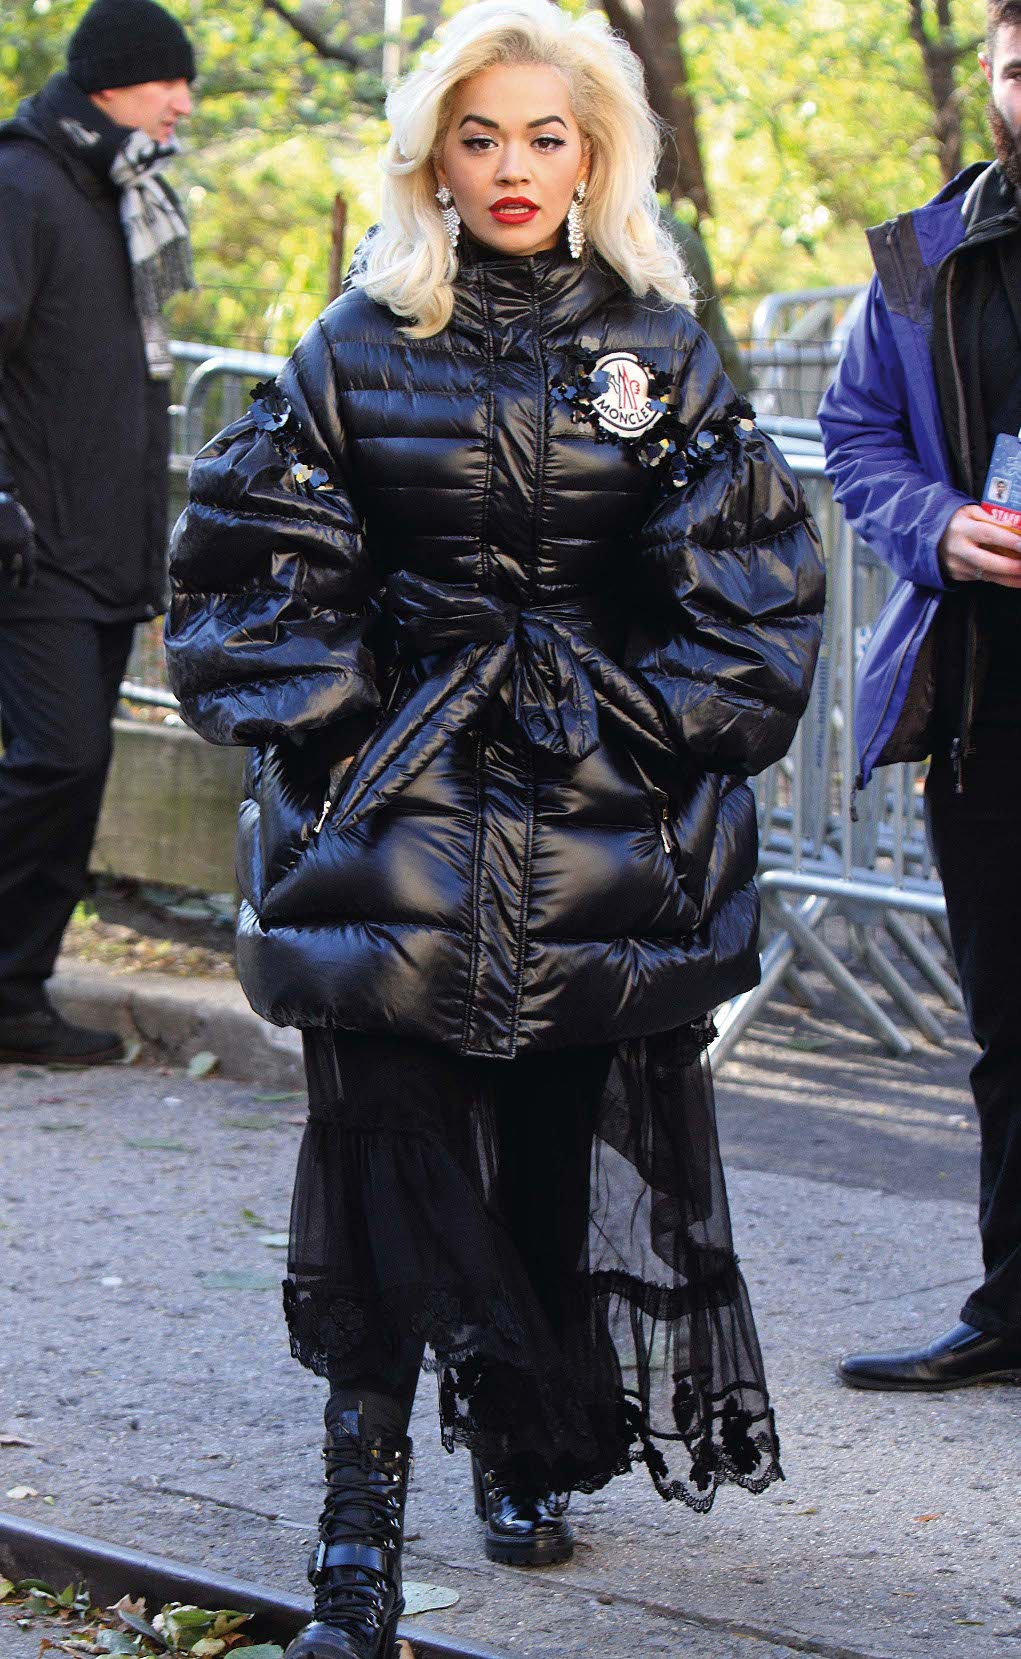 Rita Ora at the Macy's Thanksgivings Day Parade in Midtown Manhattan. New York City, New York - Thursday November 22, 2018., Image: 397809050, License: Rights-managed, Restrictions: N, Model Release: no, Credit line: Profimedia, Pacific coast news